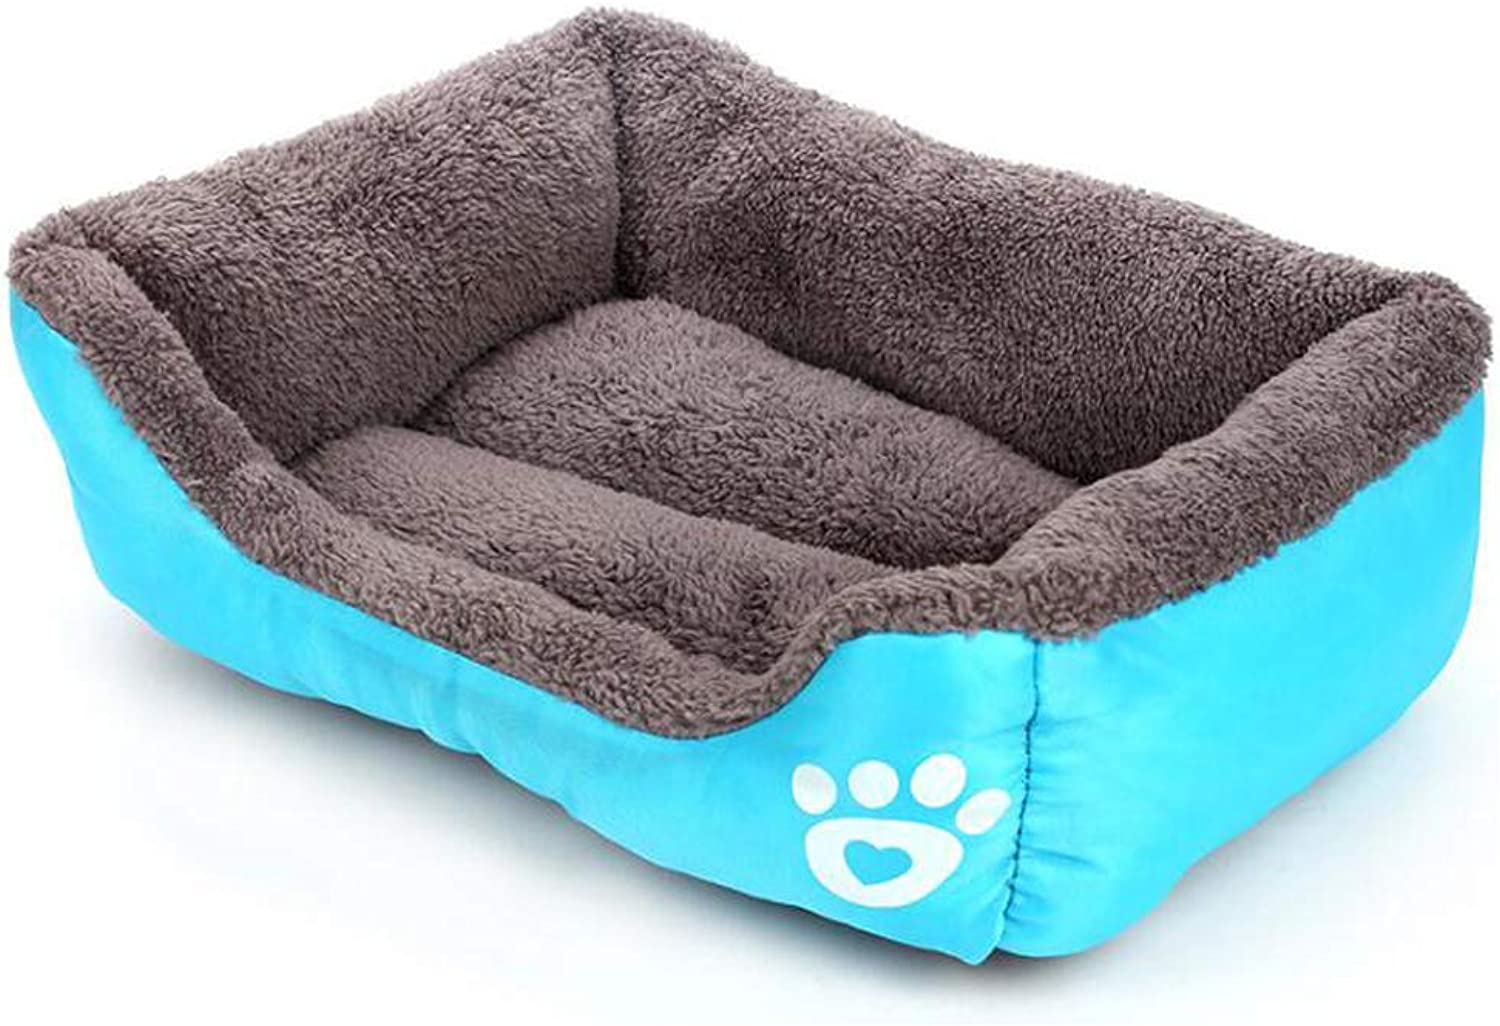 HQSB Pet Bed Deluxe Soft Washable Dog Bed,Cat Bed Warm Basket Cushion with Plush Lining (color   bluee, Size   L)